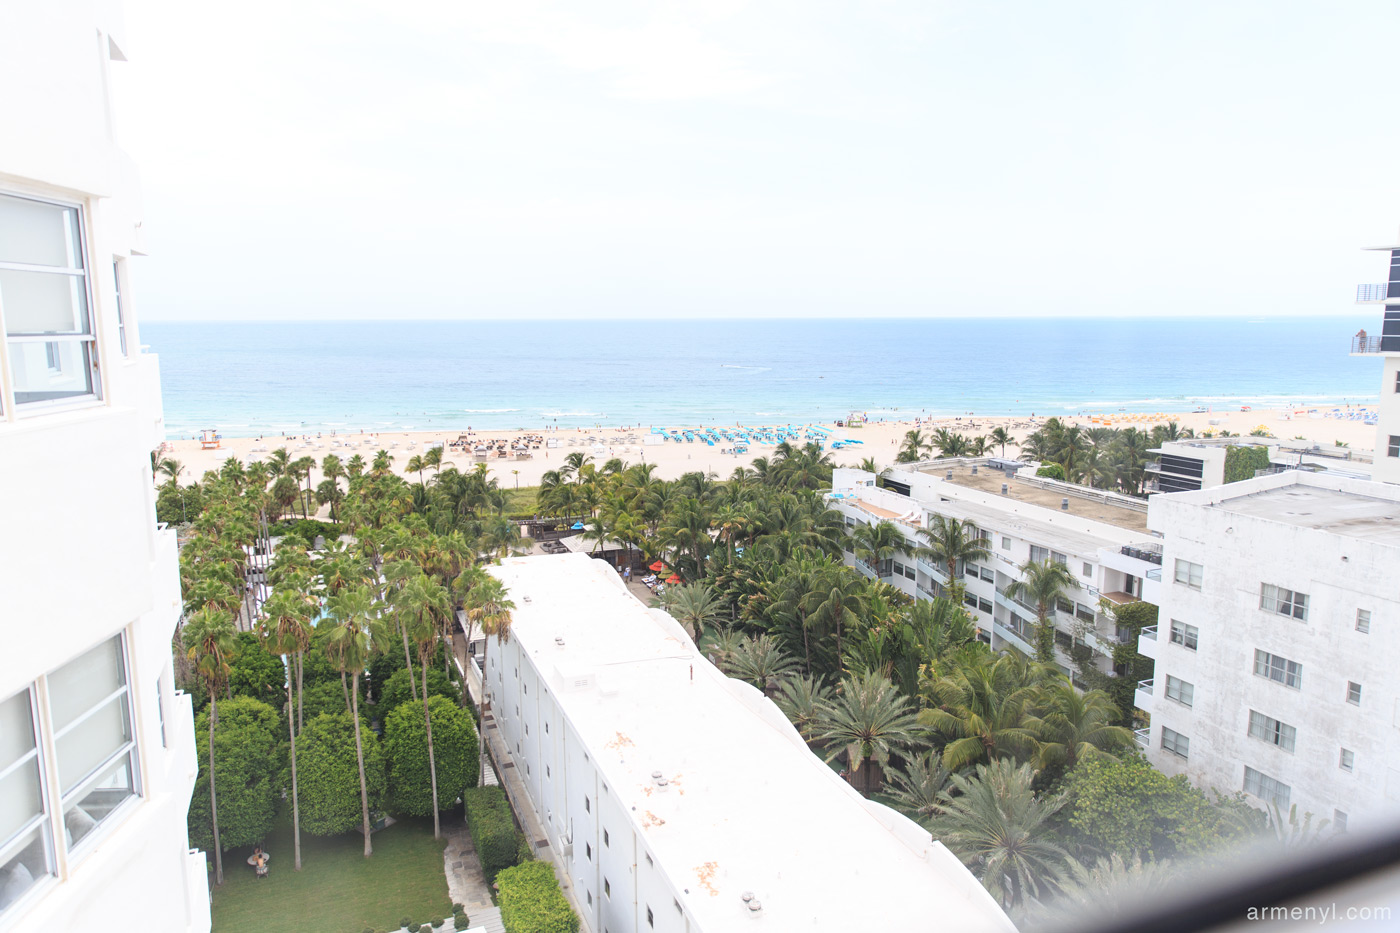 View of Miami south Beach from Delano Hotel in Miami photographed by Travel Blogger Armenyl.com